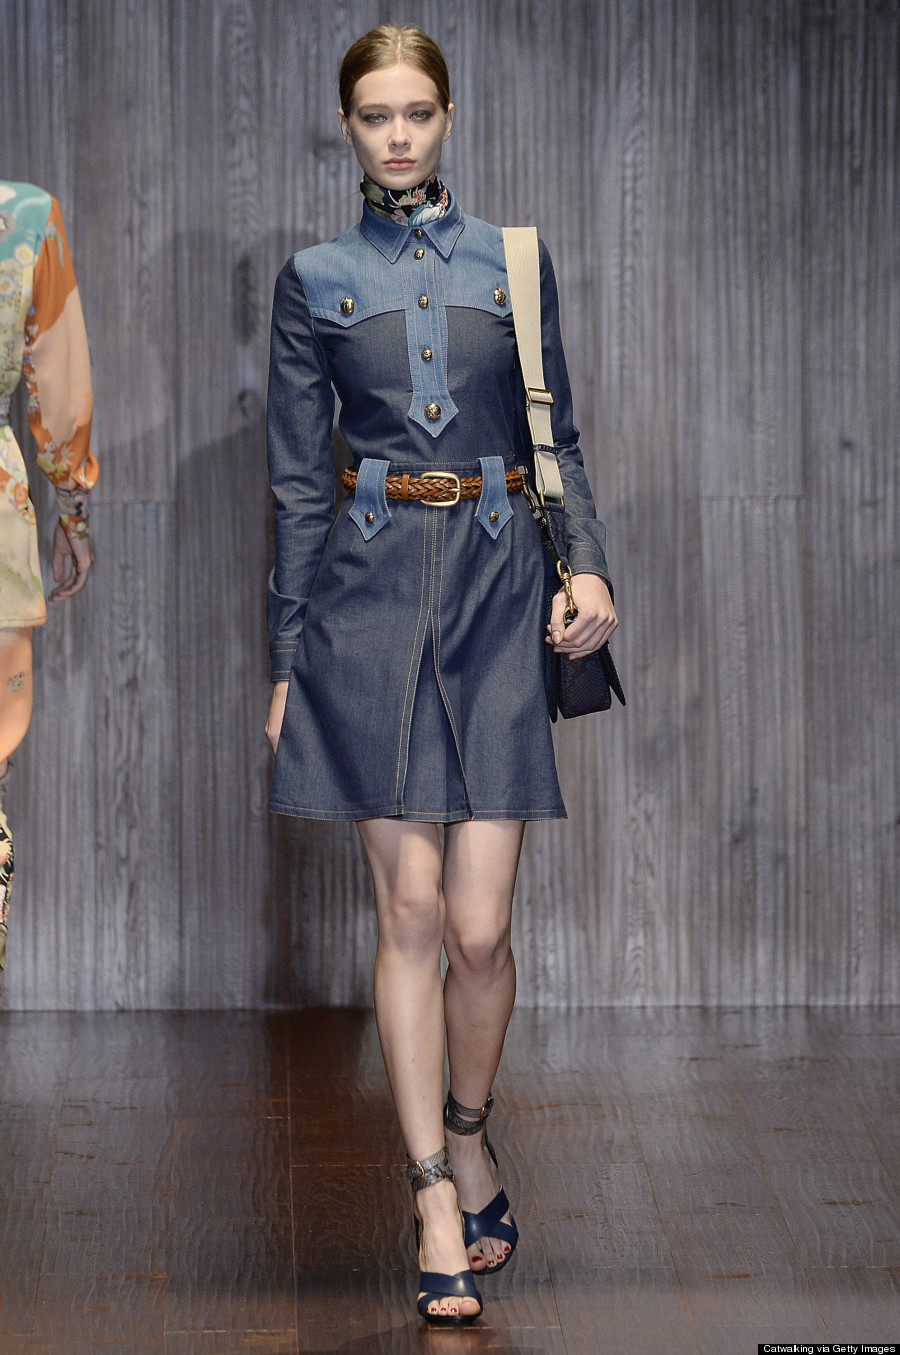 Gucci - Runway RTW - Spring 2015 - Milan Fashion Week